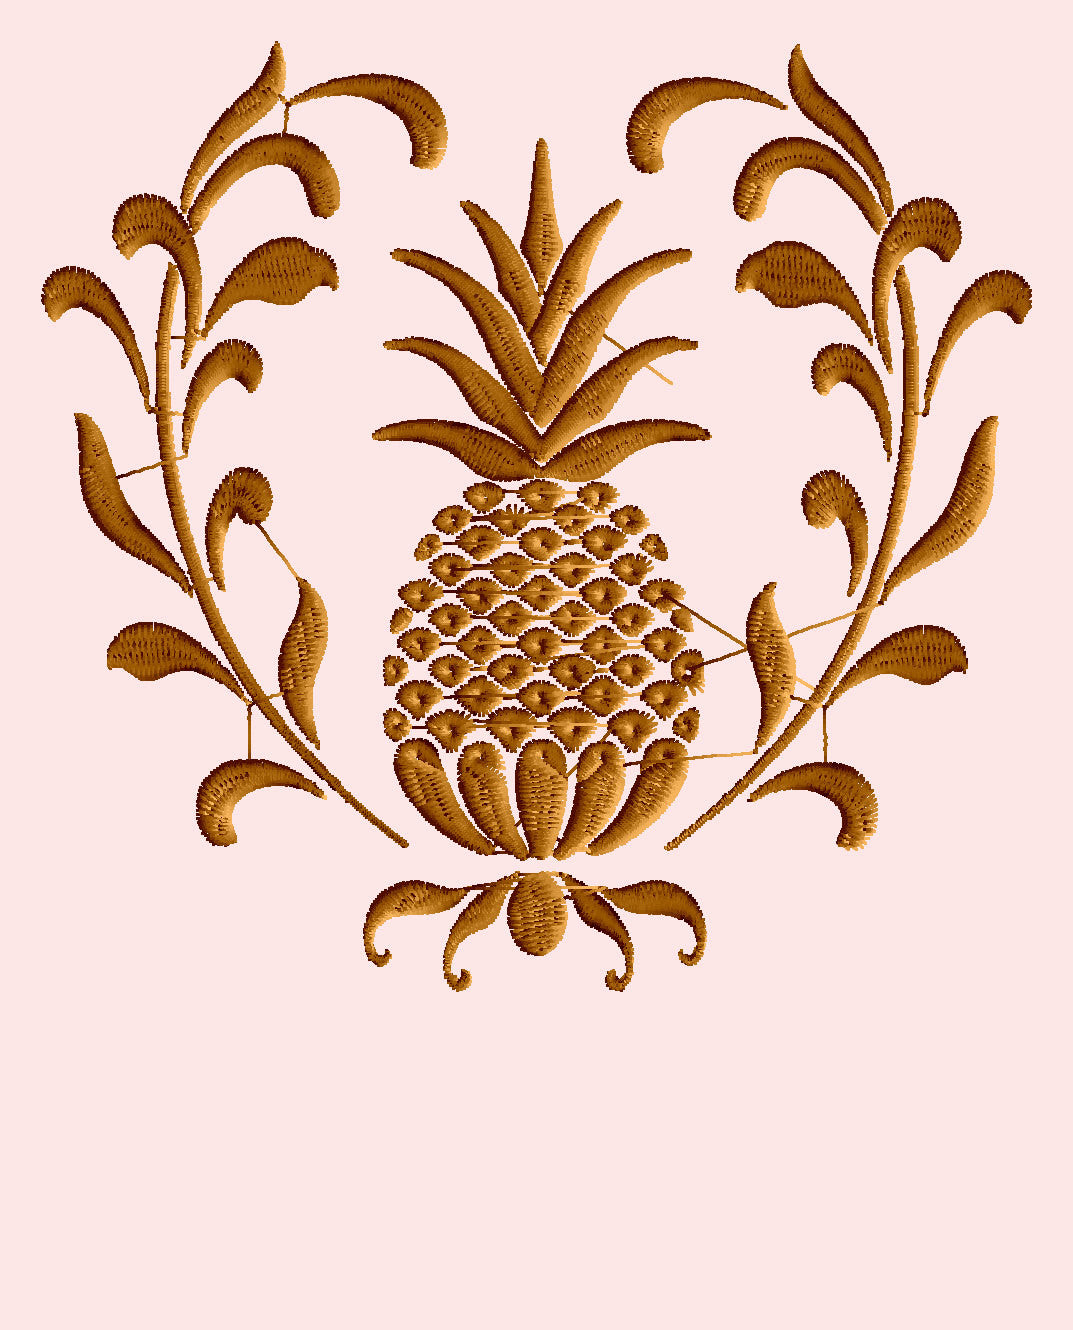 Pineapple Wreath Design - Welcome - Valentines day Heart and home - EMBROIDERY DESIGN FILE - Instant download - Dst Hus Jef Pes Exp formats $4.99 USD